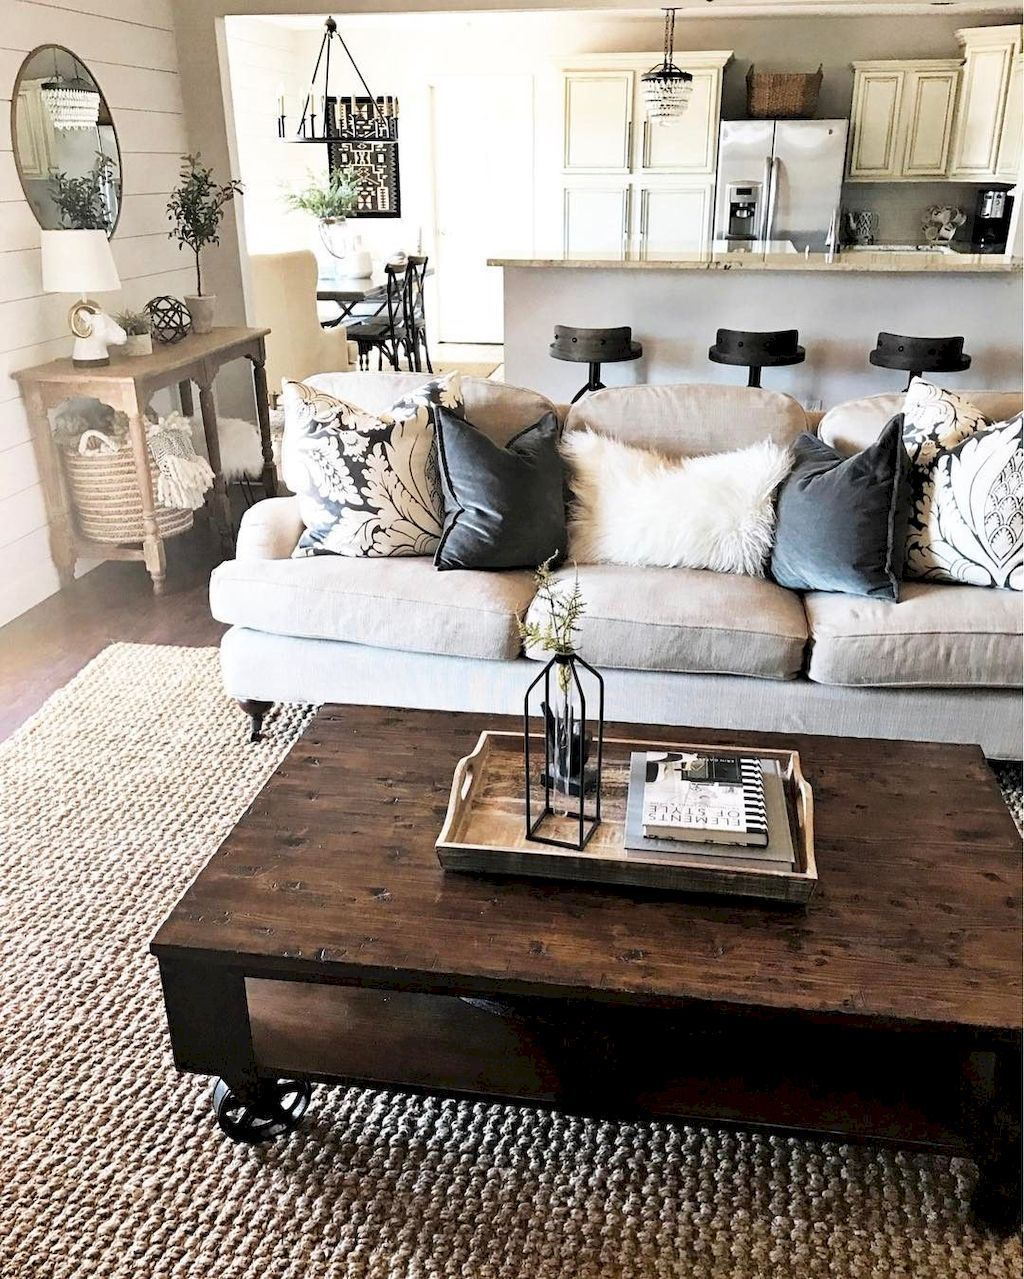 53 Cozy Modern Farmhouse Living Room Decor Ideas Farm House Living Room Farmhouse Style Living Room Farmhouse Decor Living Room